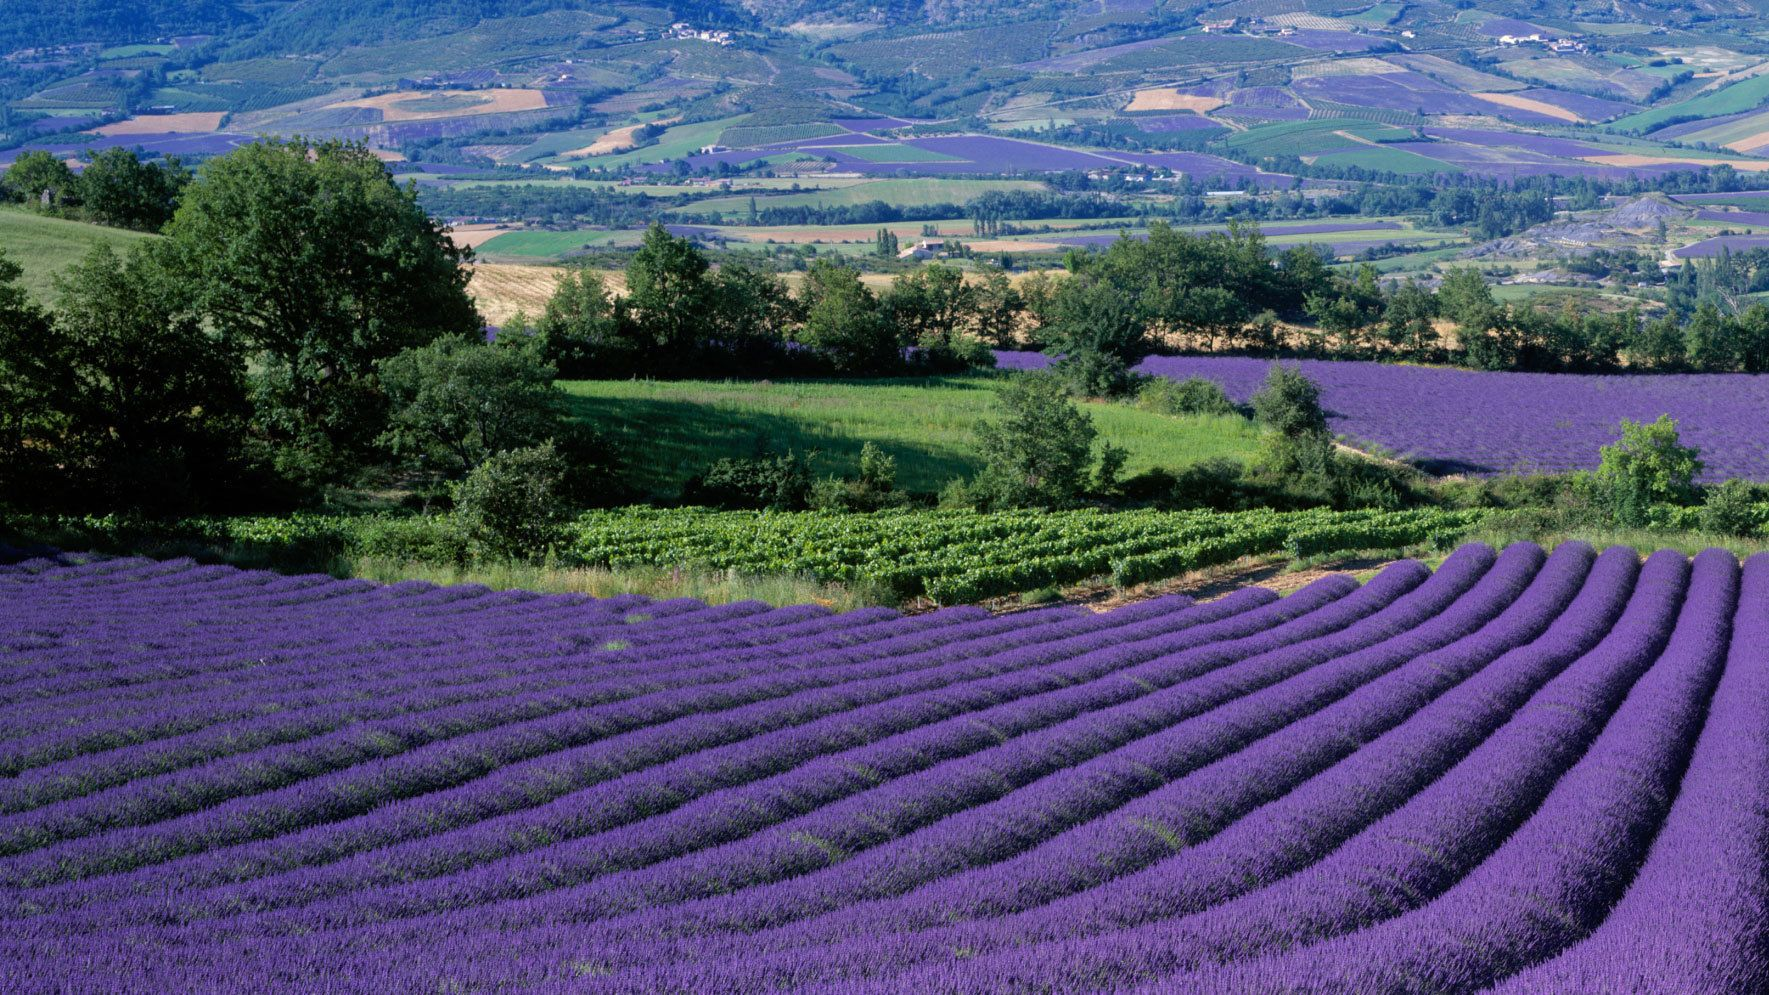 Rolling hills of lavender fields in Provence